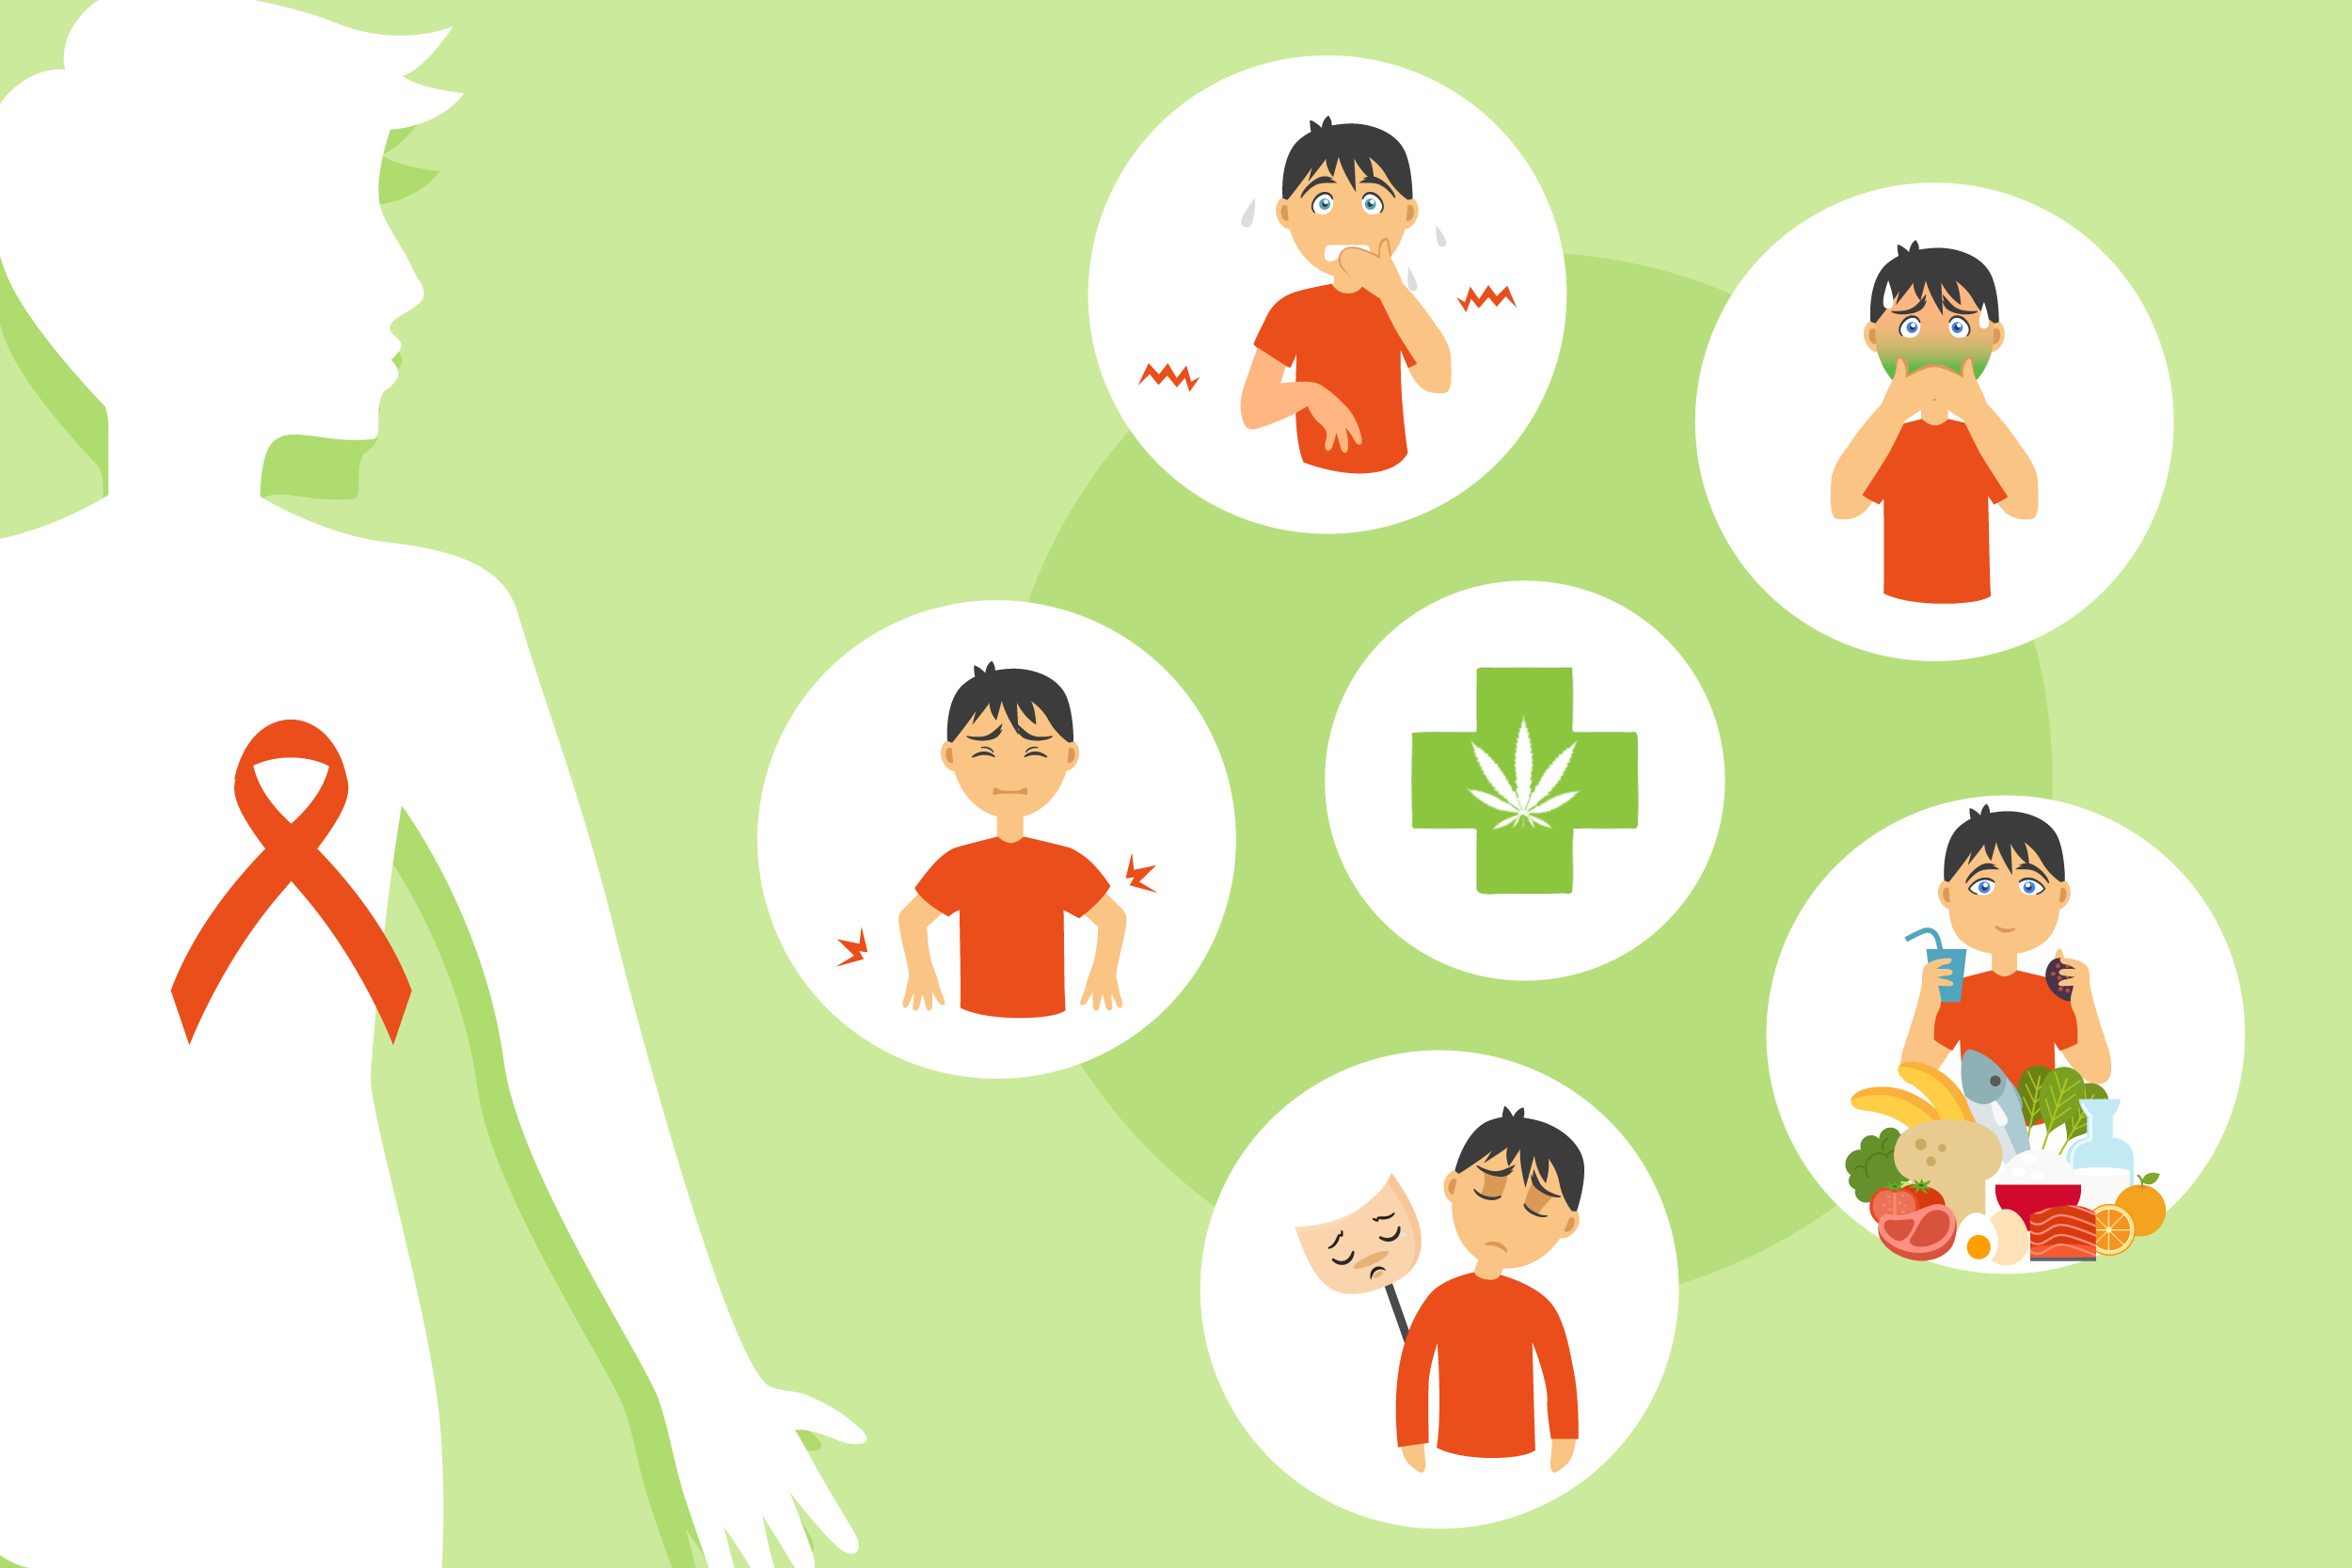 Hiv virus affecting the person clipart png image royalty free download HIV and AIDS: medical cannabis as a treatment | Kalapa Clinic image royalty free download